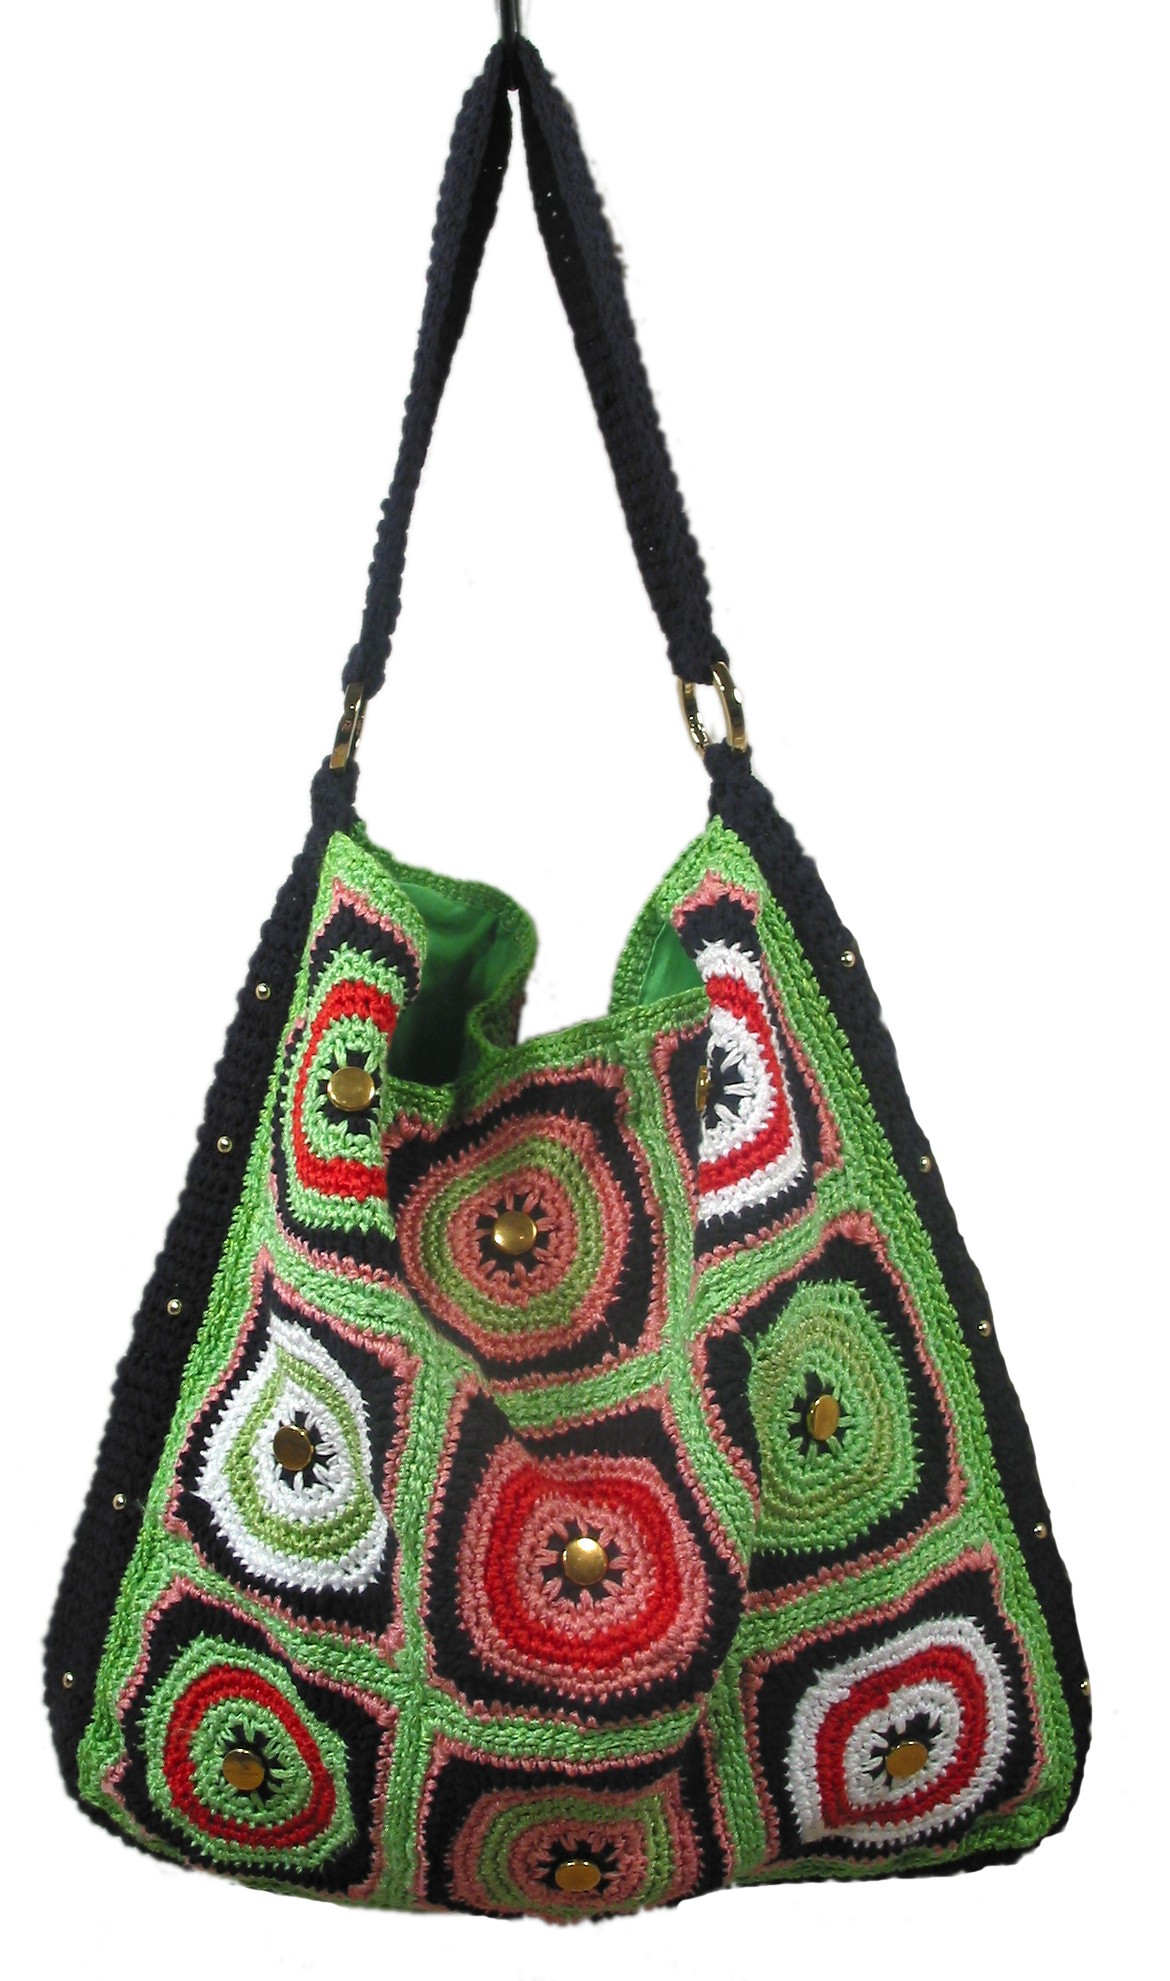 New Knit and Crochet Pattern Handy Hobo Handbags Knitting and Crochet Patterns Of Luxury Simple Knitting Patterns 8 Crochet and Knit Knitting and Crochet Patterns